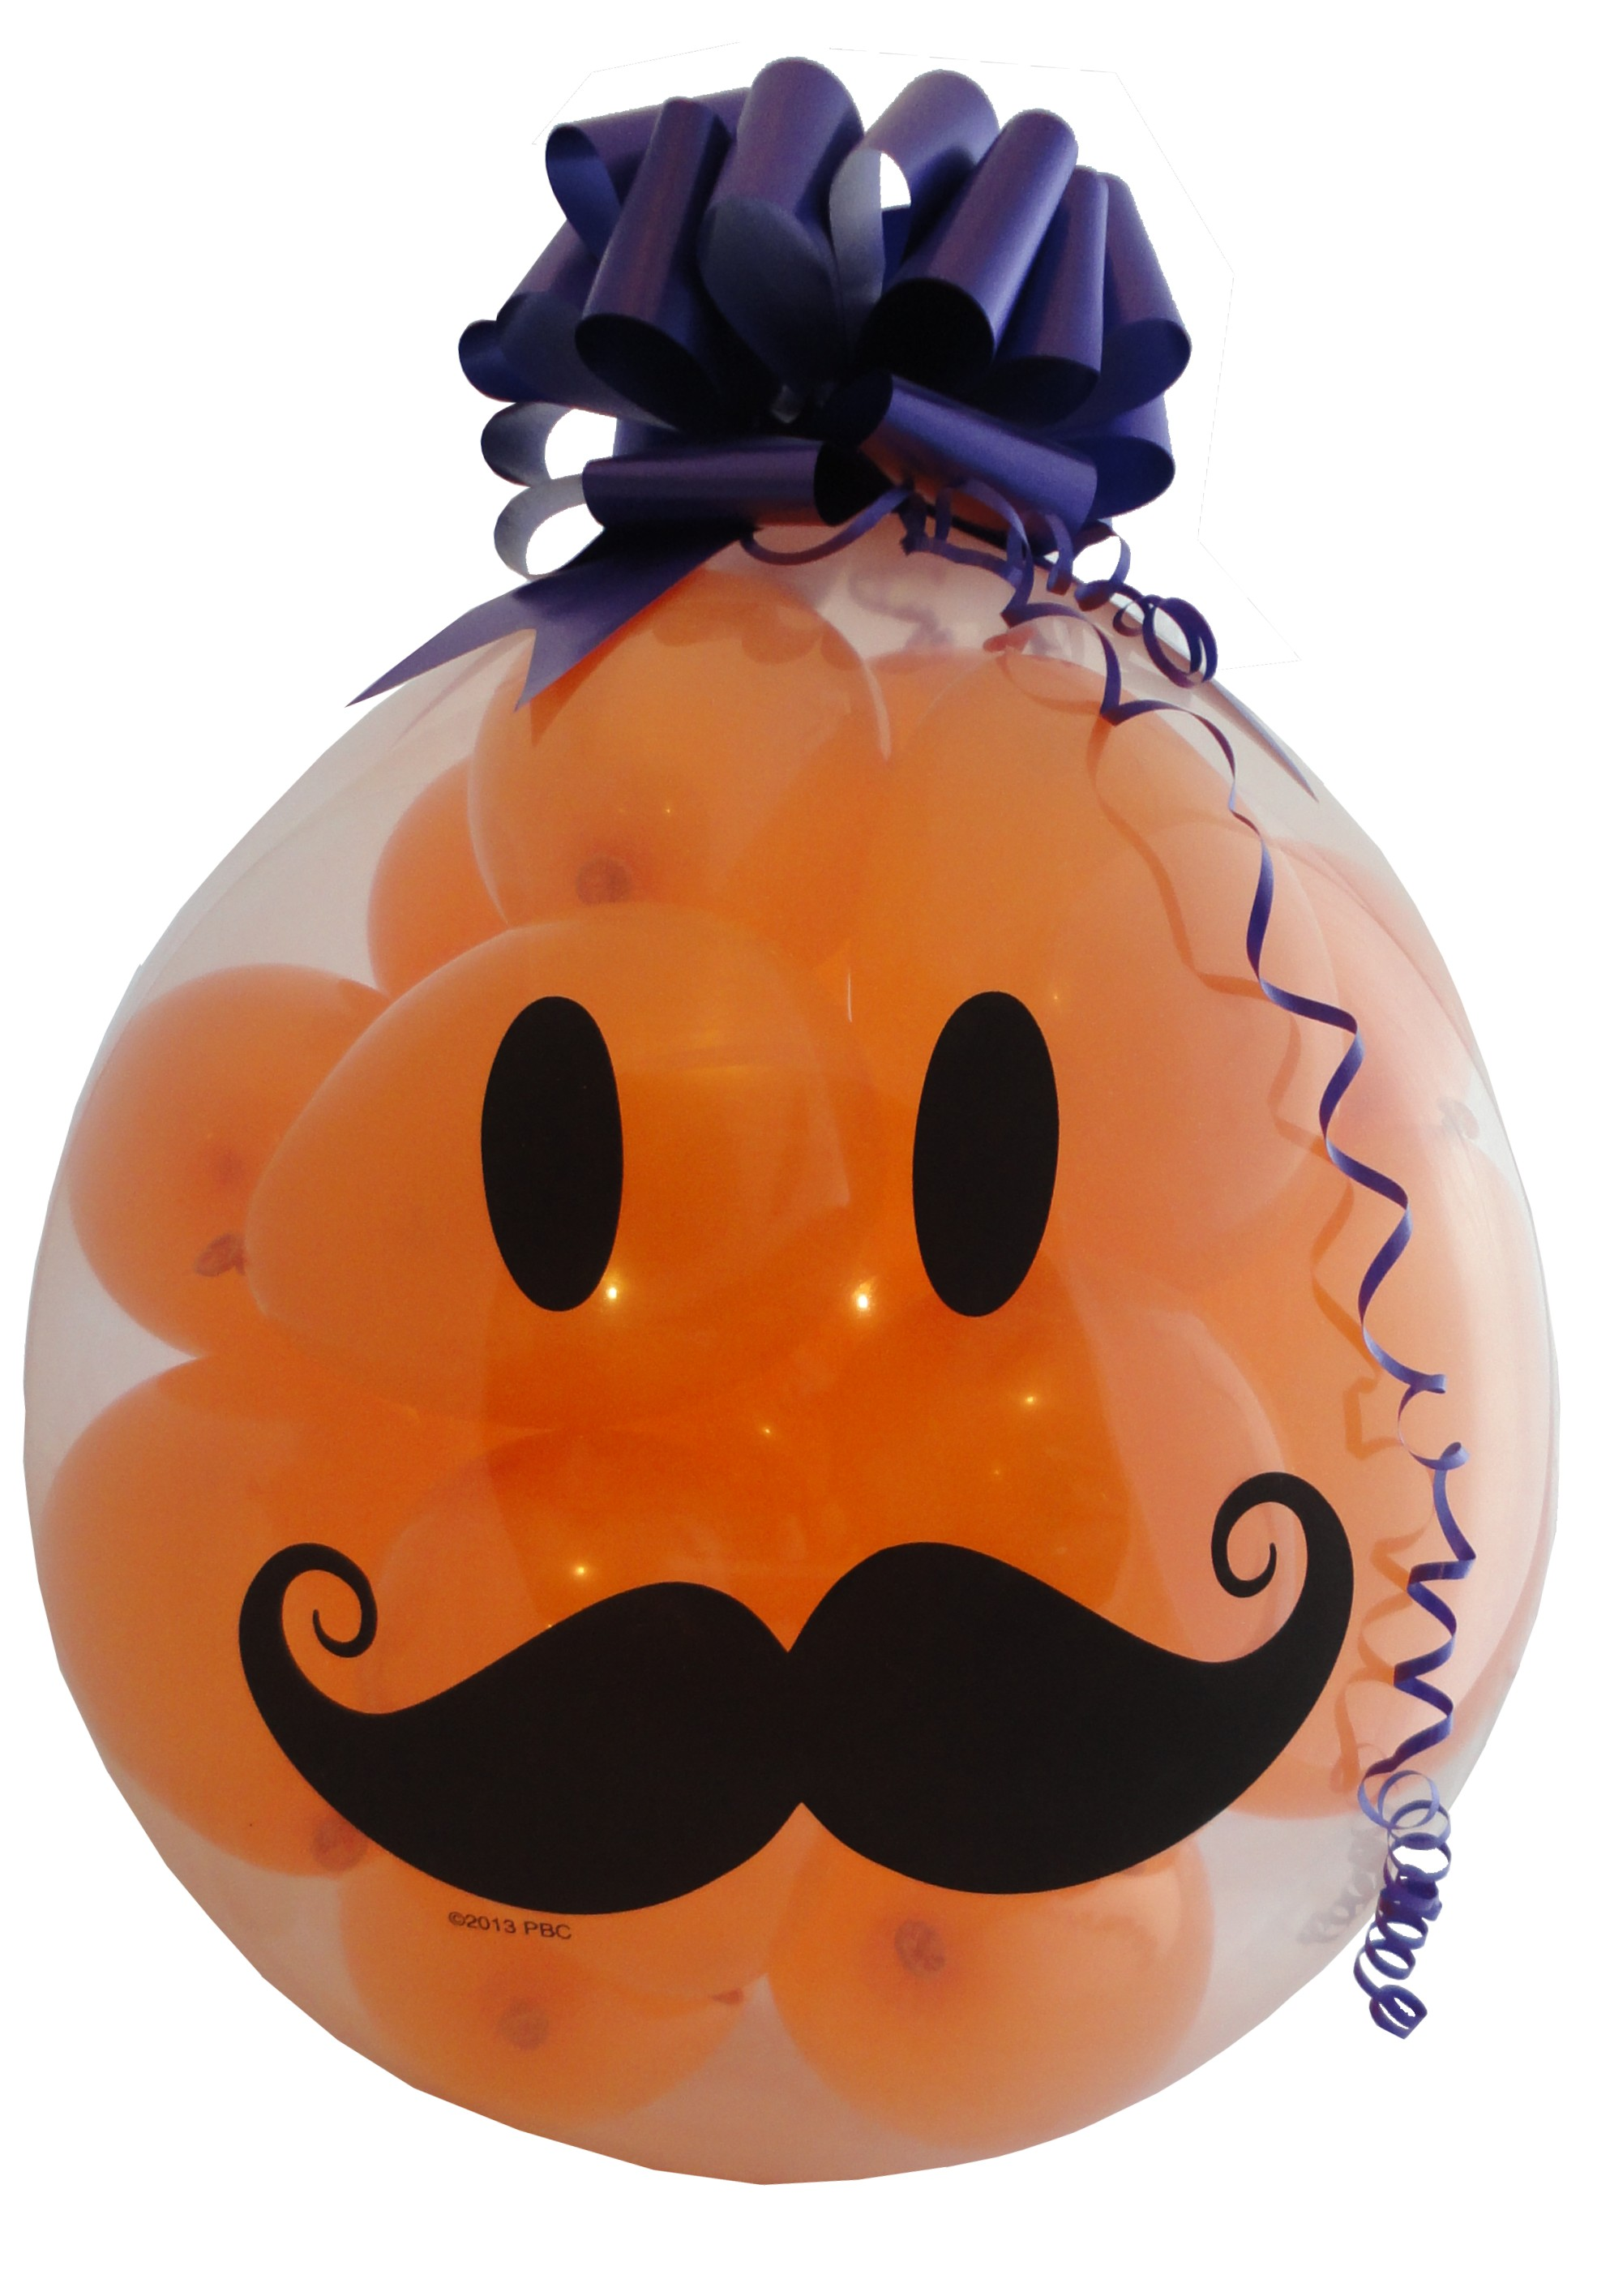 qualatex-18-inch-stuffing-balloon-mustache.jpg